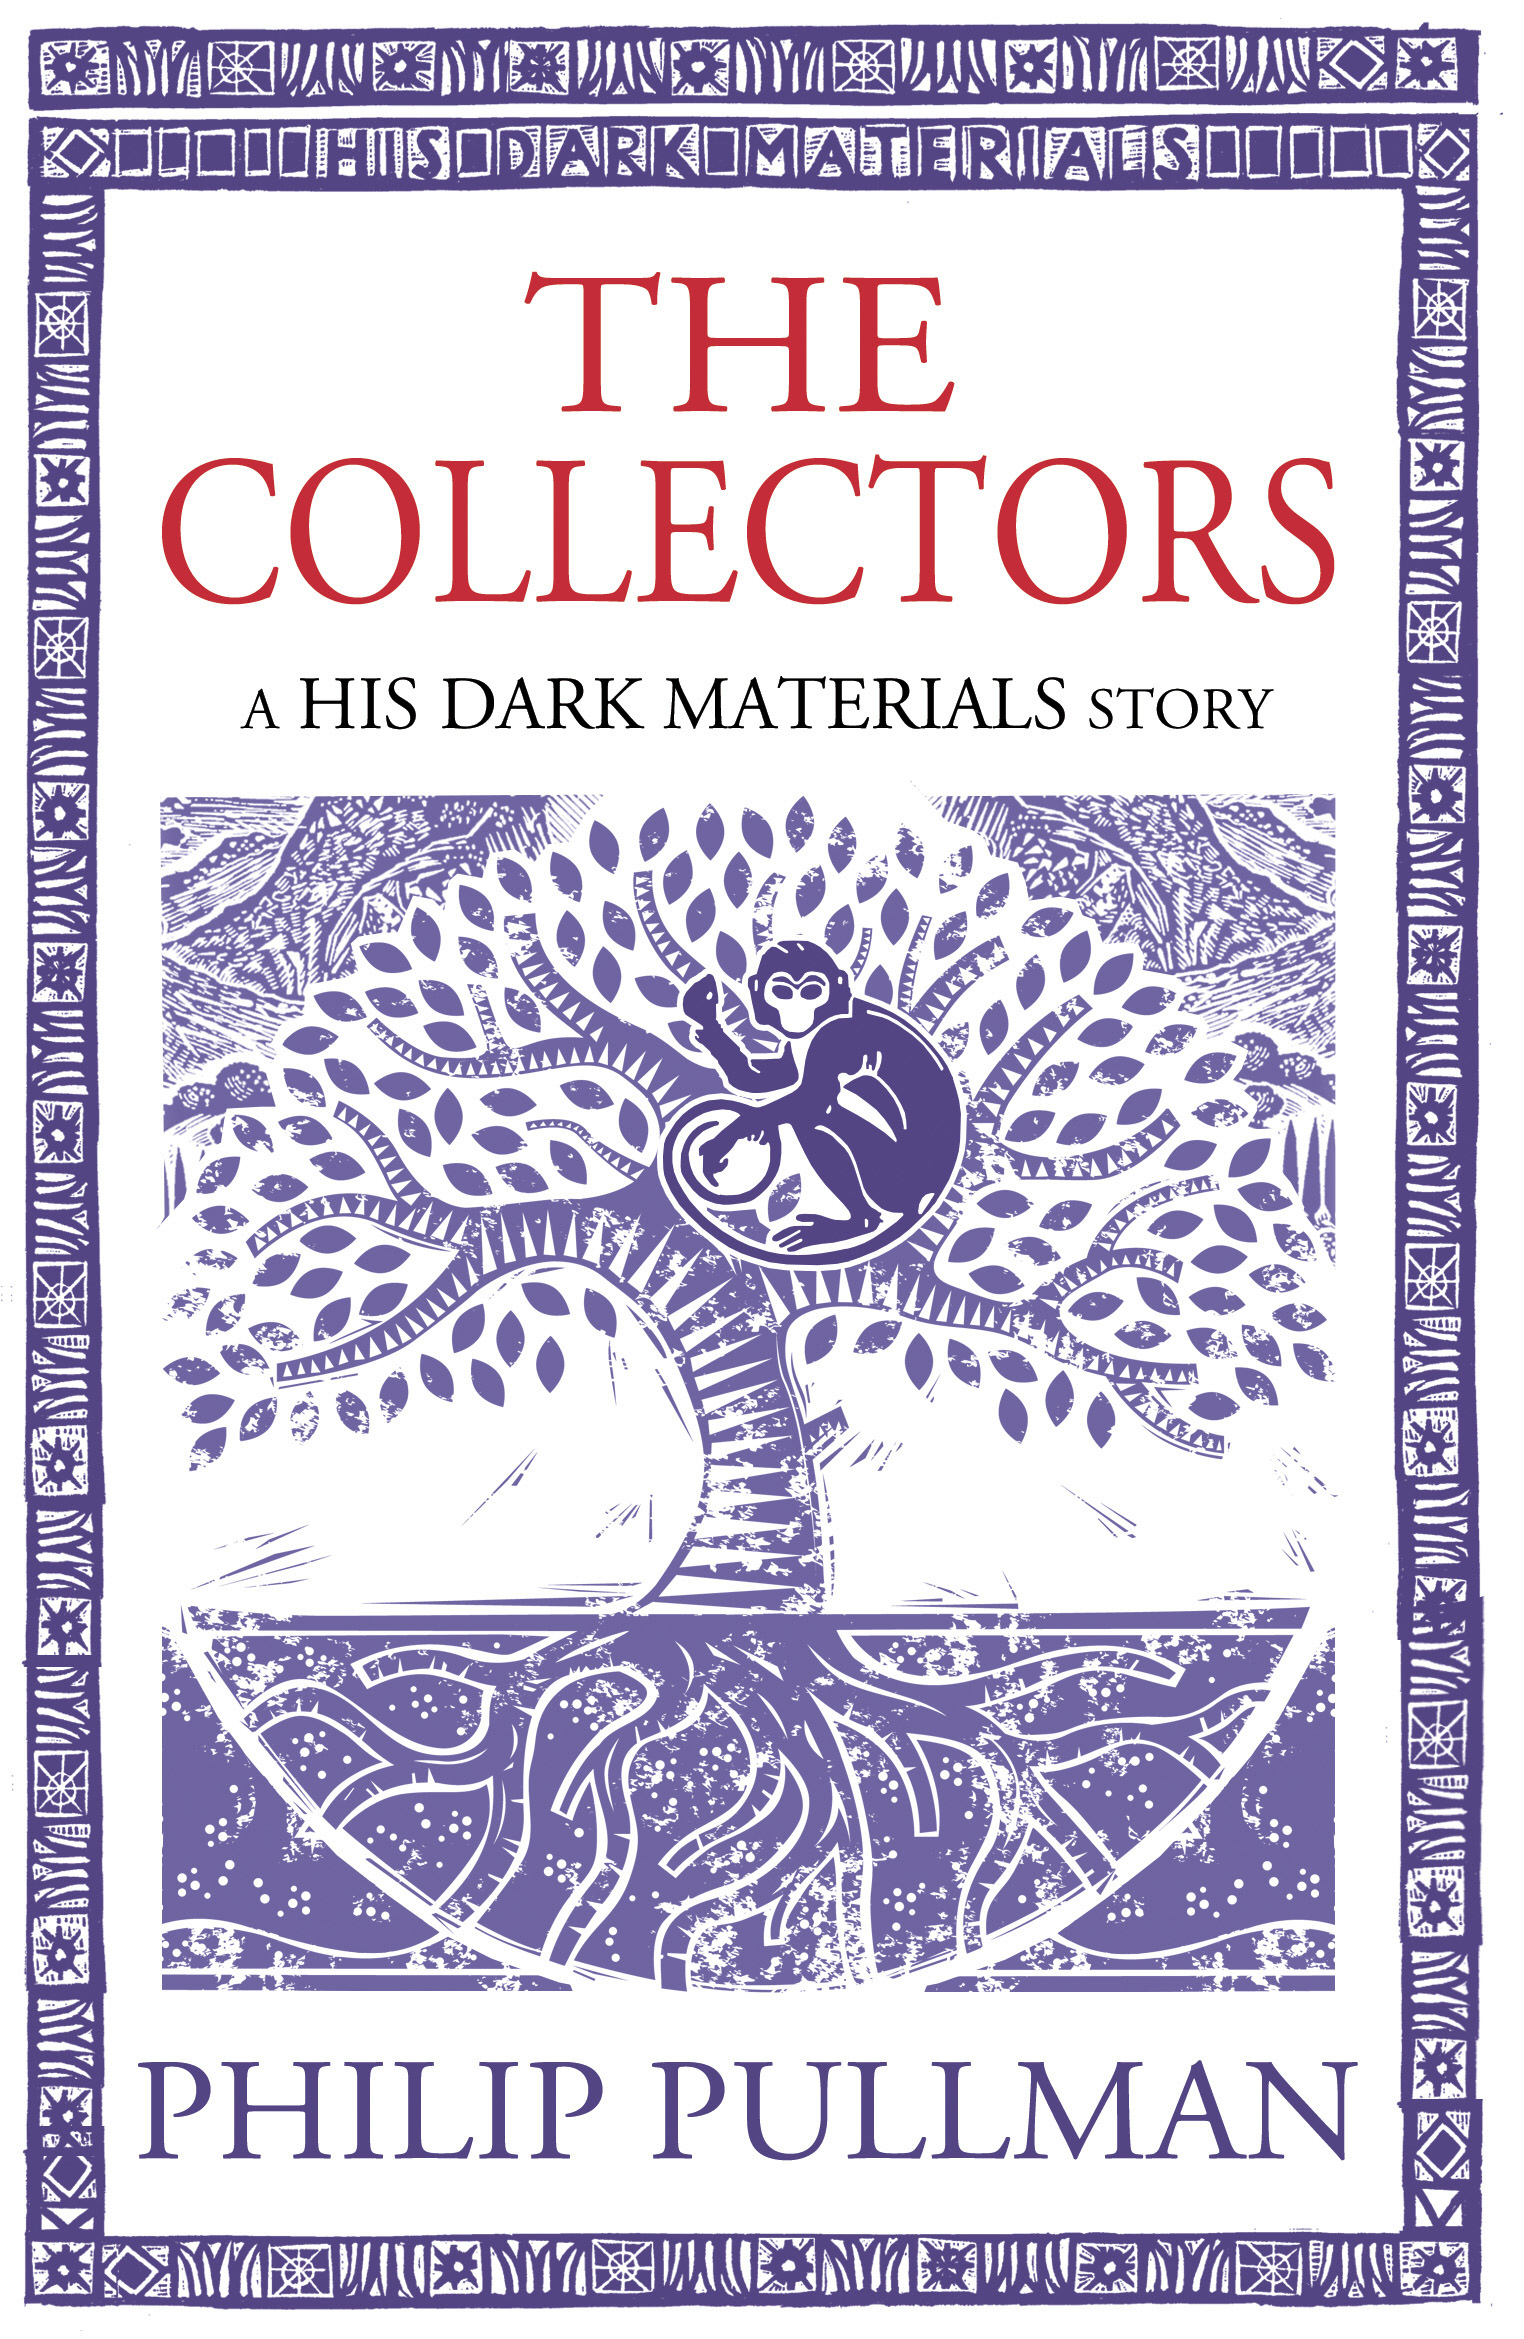 The Collectors His Dark Materials Story